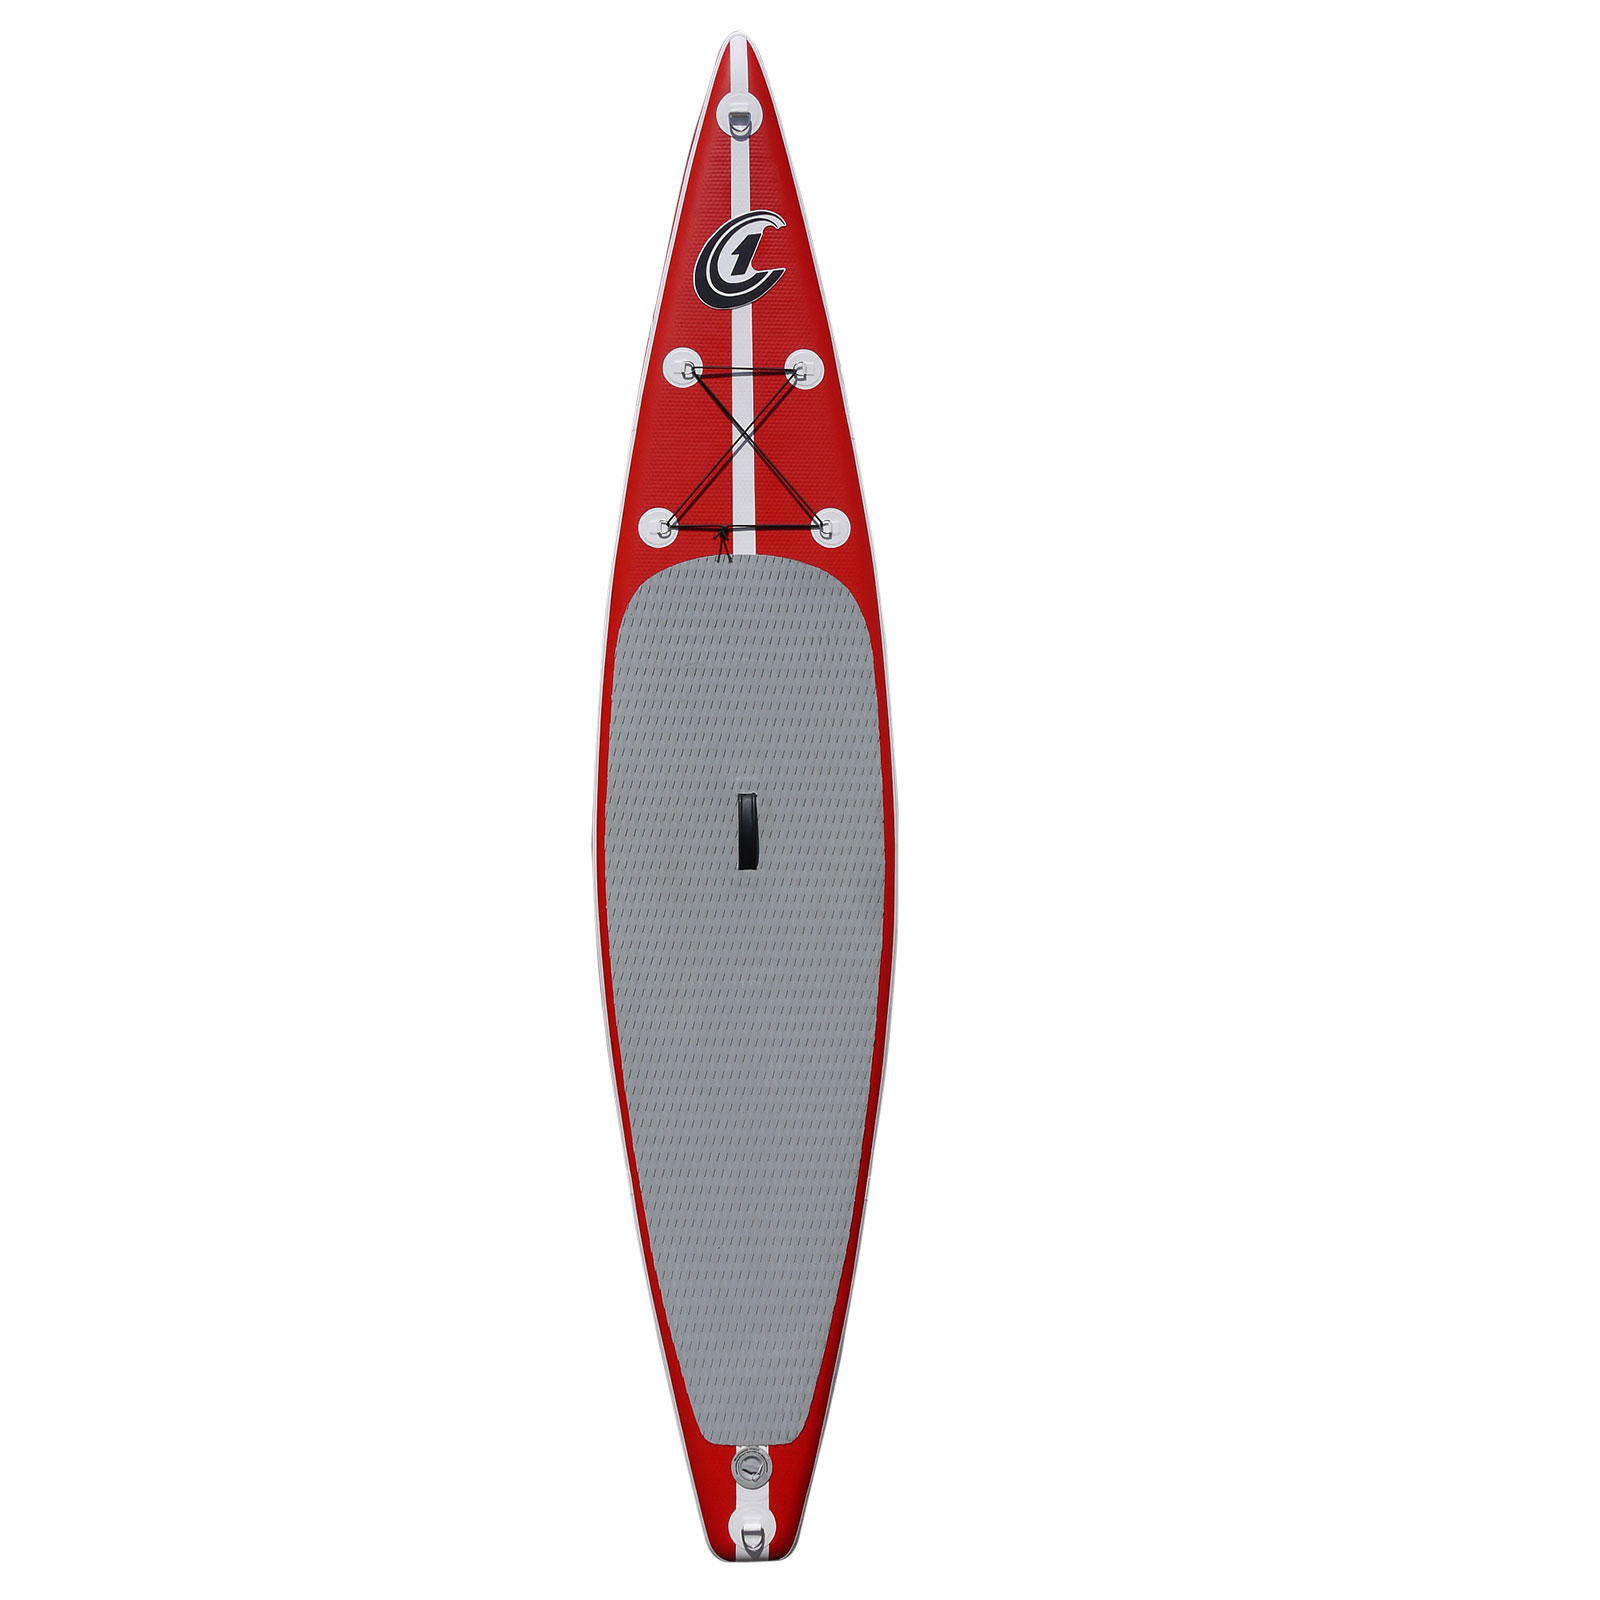 "12' 6"" Inflatable Stand Up Paddle (iSUP) Tourer Board"